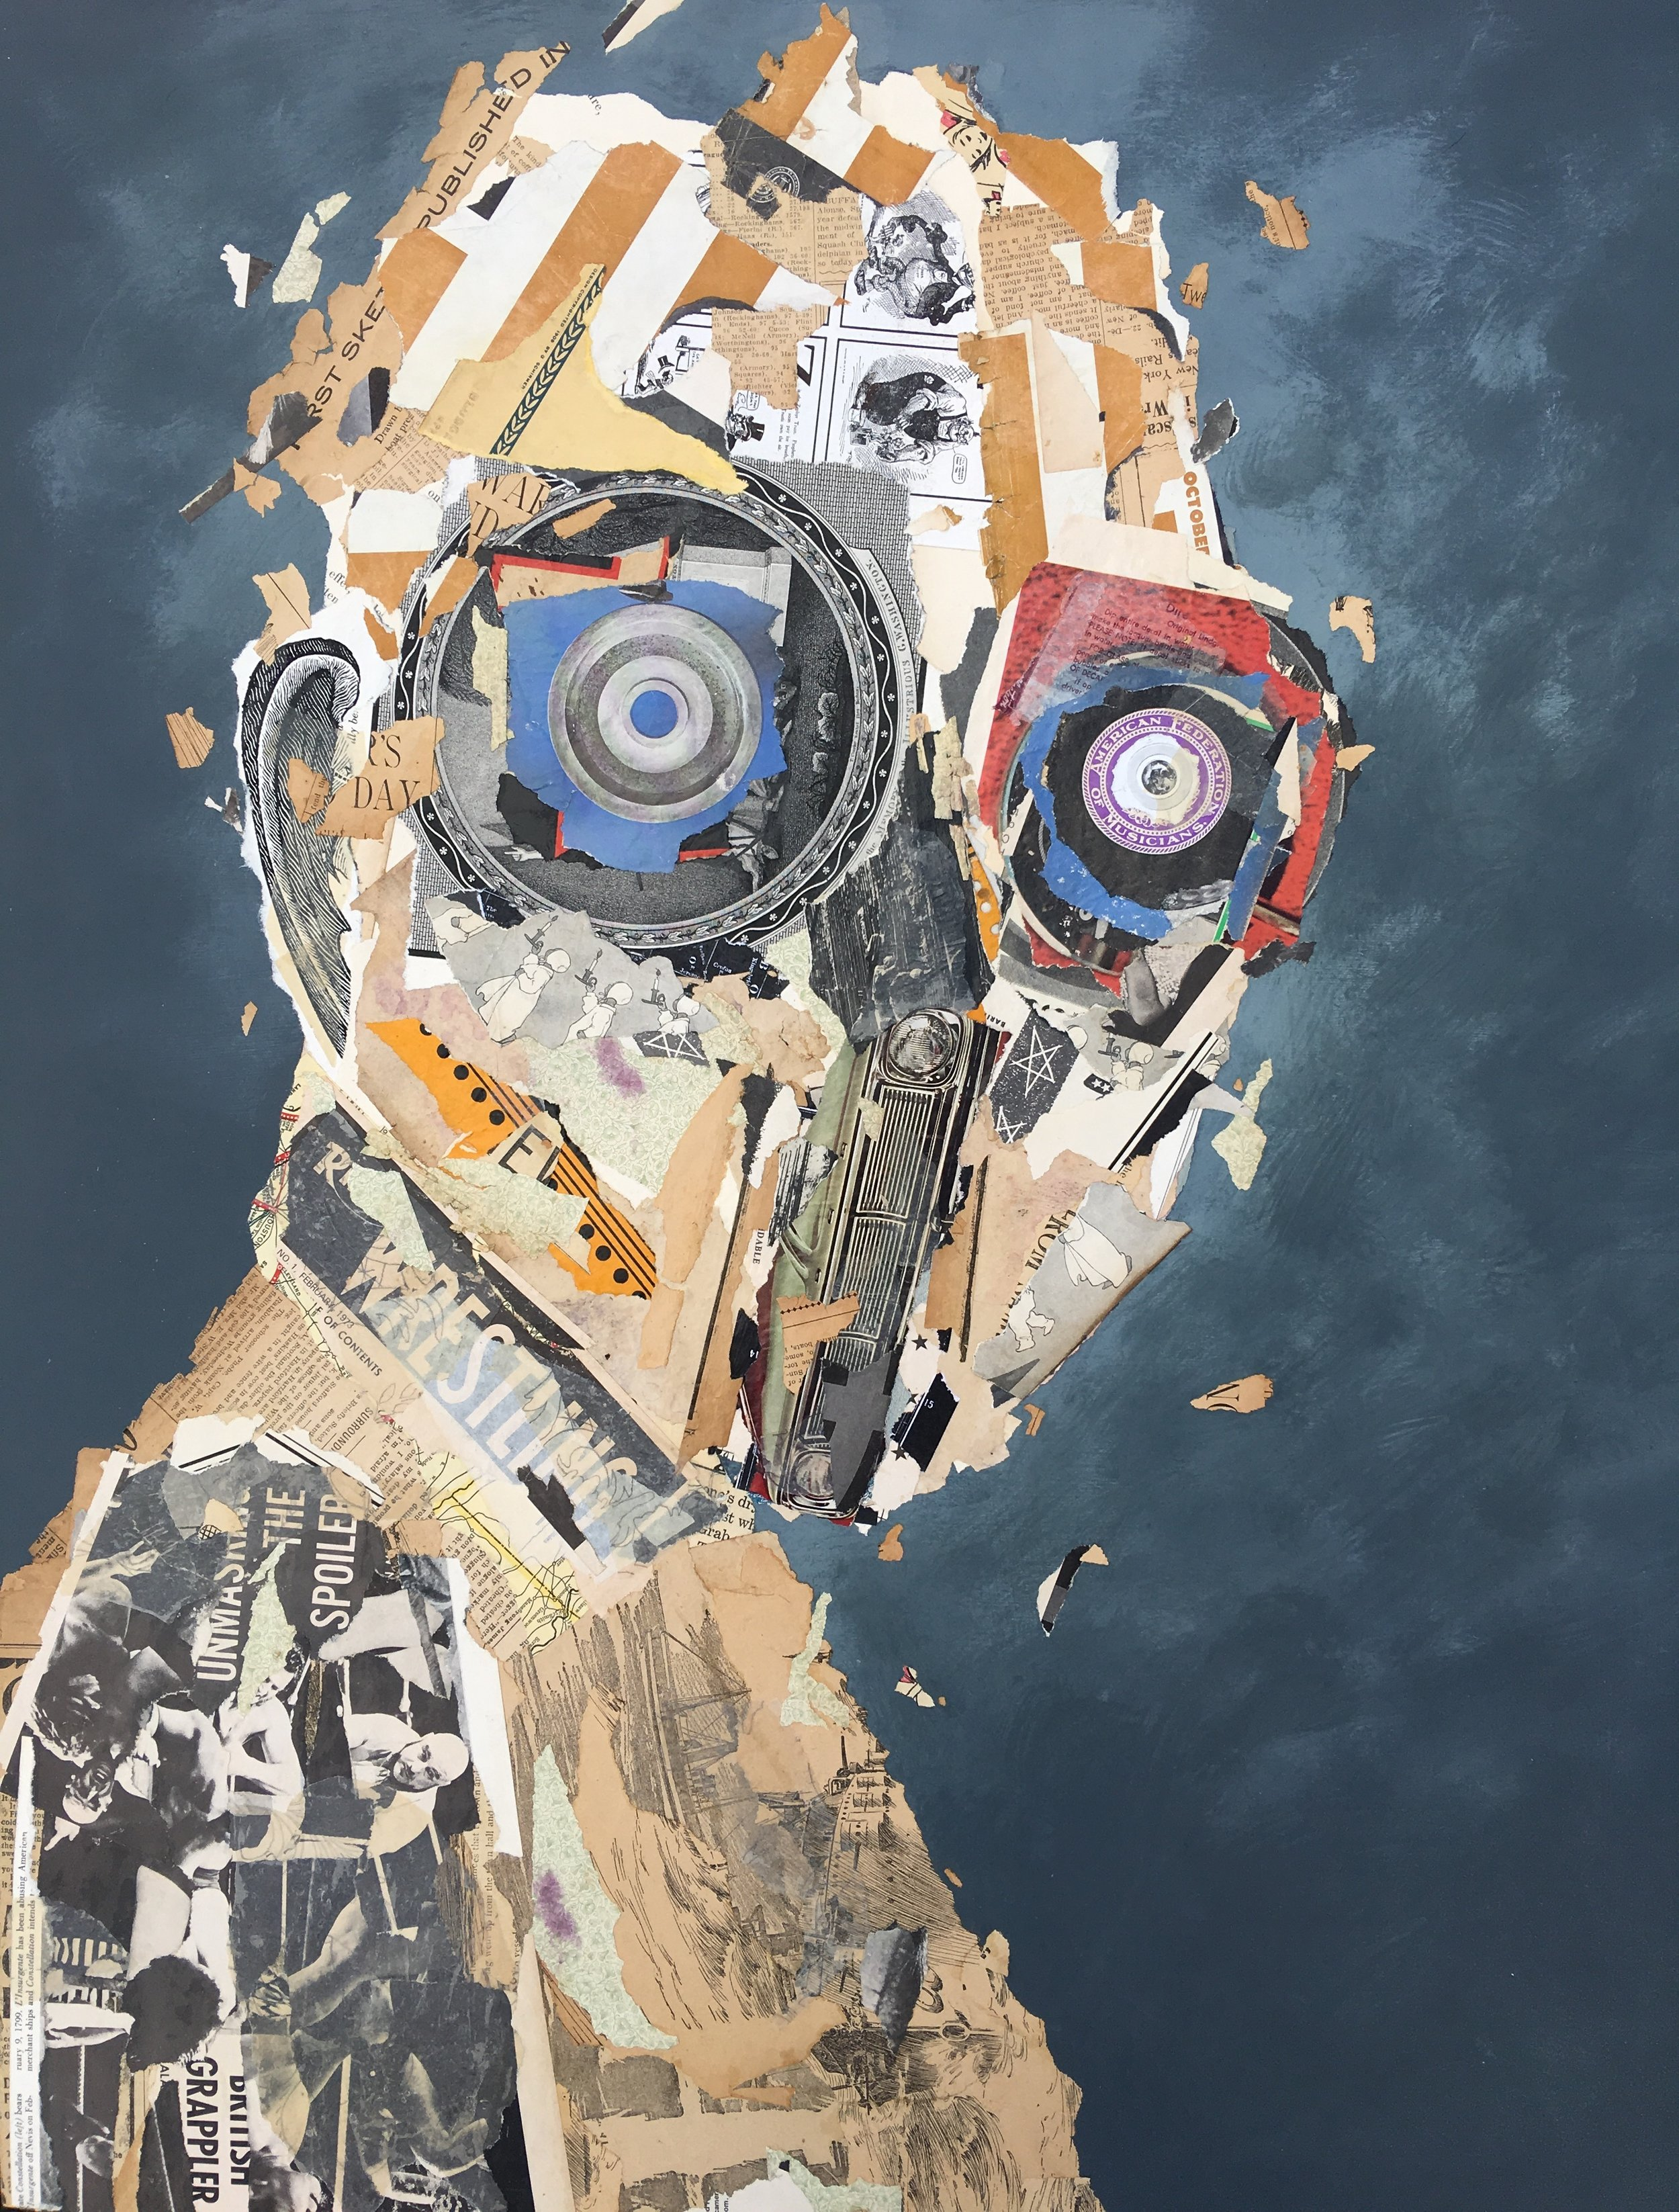 The Spoiler - 24 x 30 inches Mixed Media collage on cradled panel